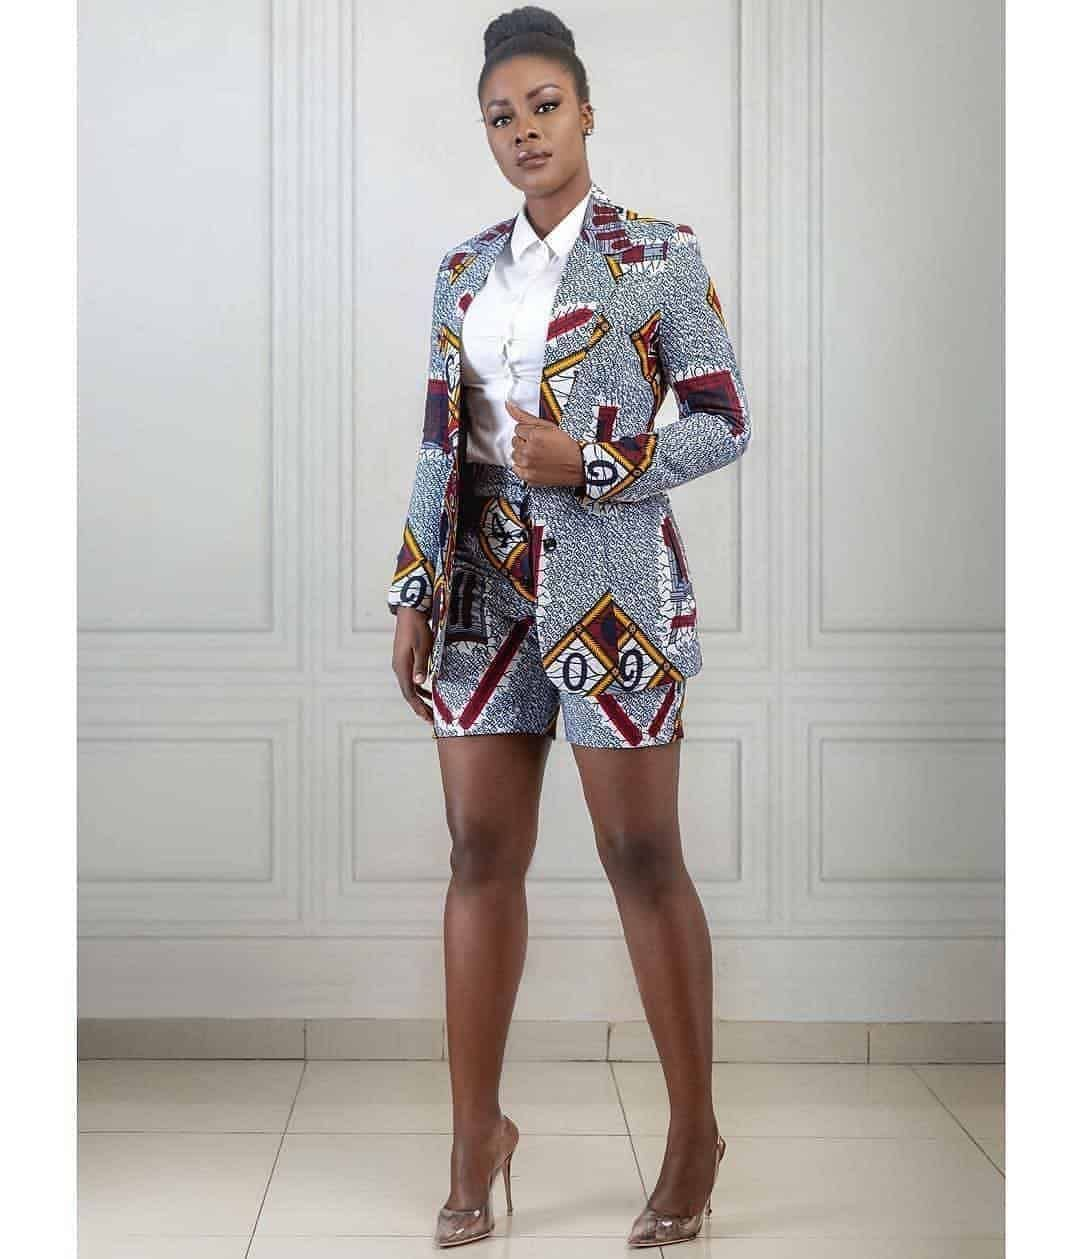 LOVELY ANKARA DRESSES AFRICAN OUTFITS WE ALL LOVE